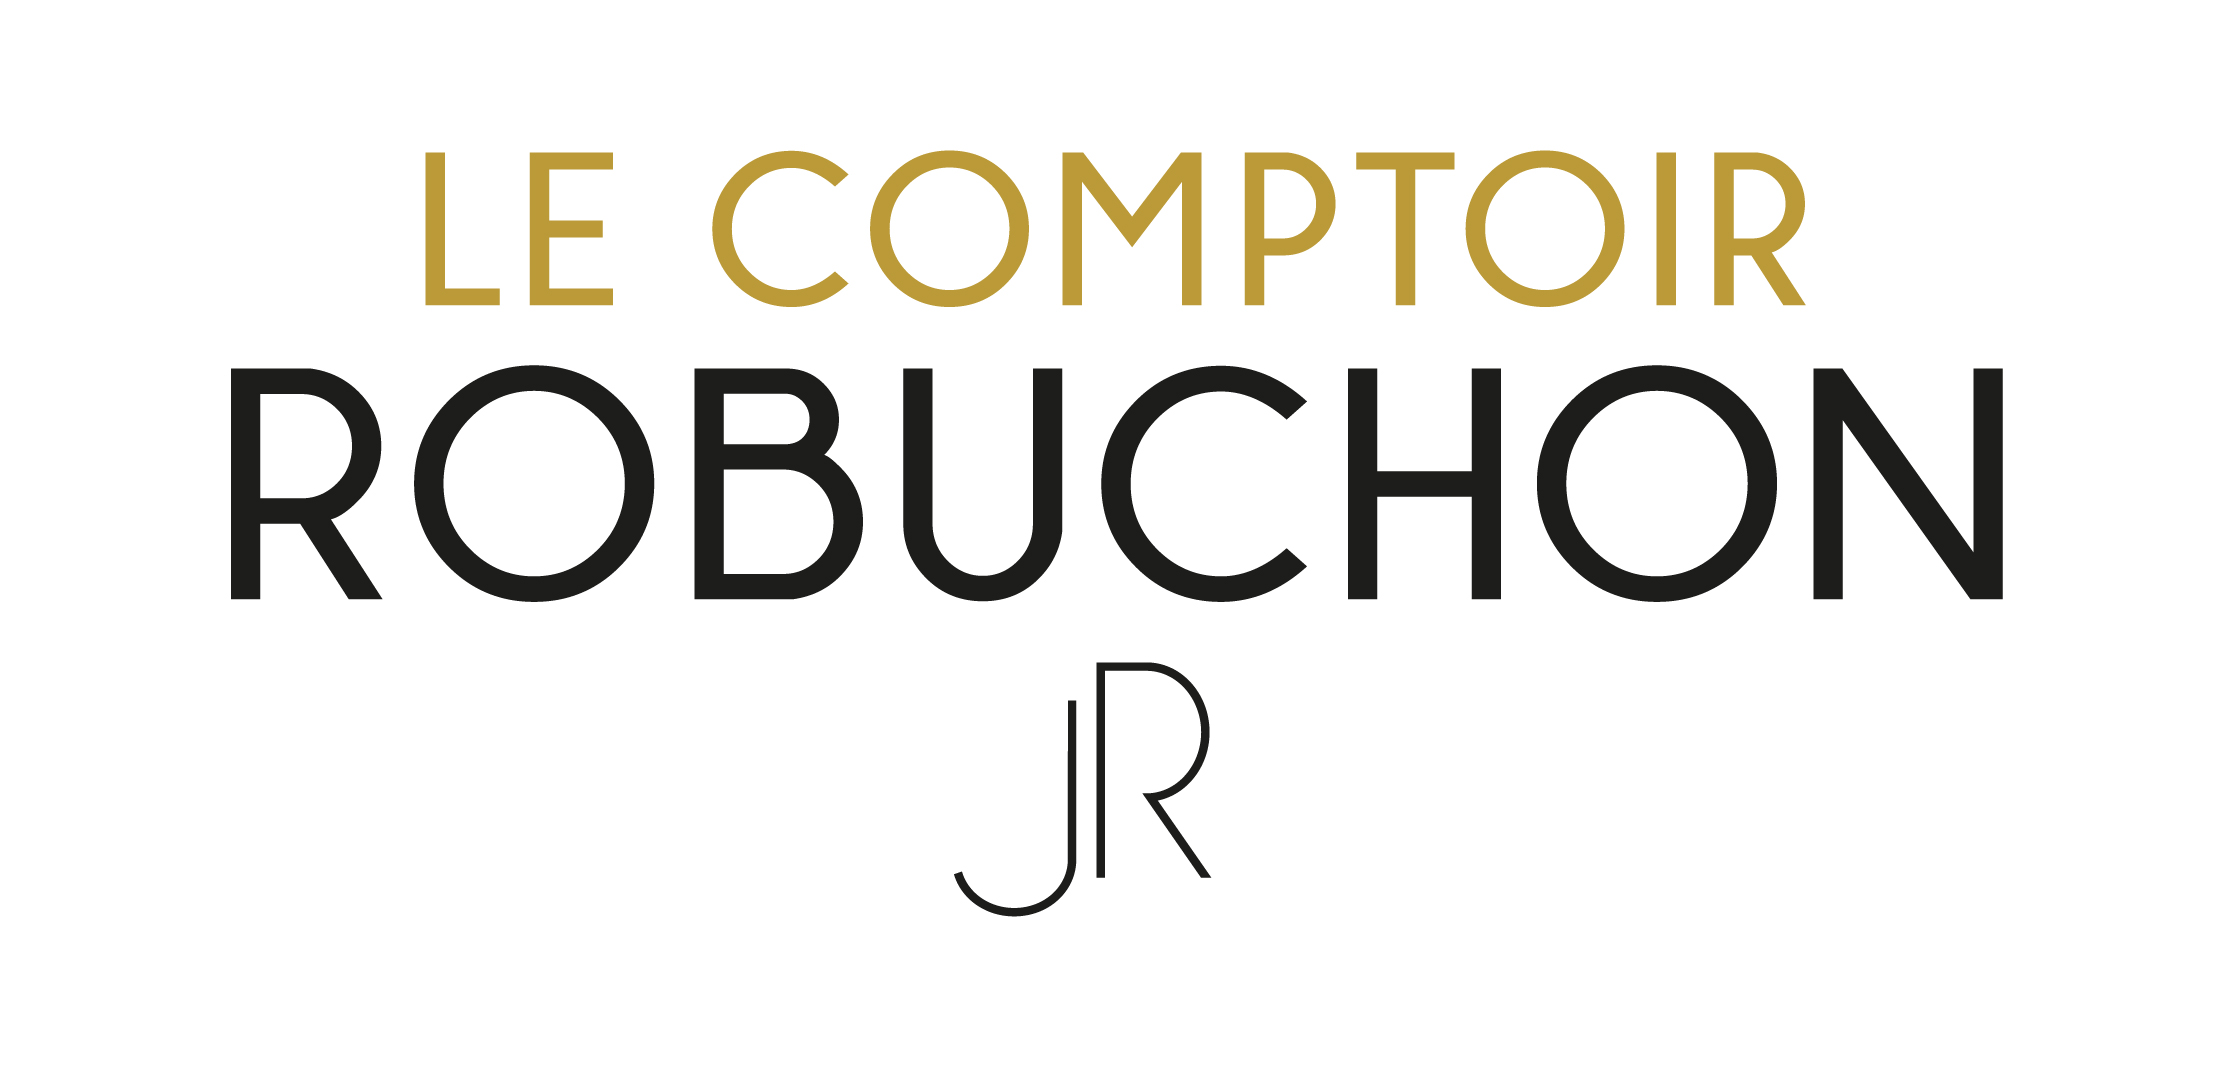 JRobuchon_Le Comptoir_logotype_white background_HD